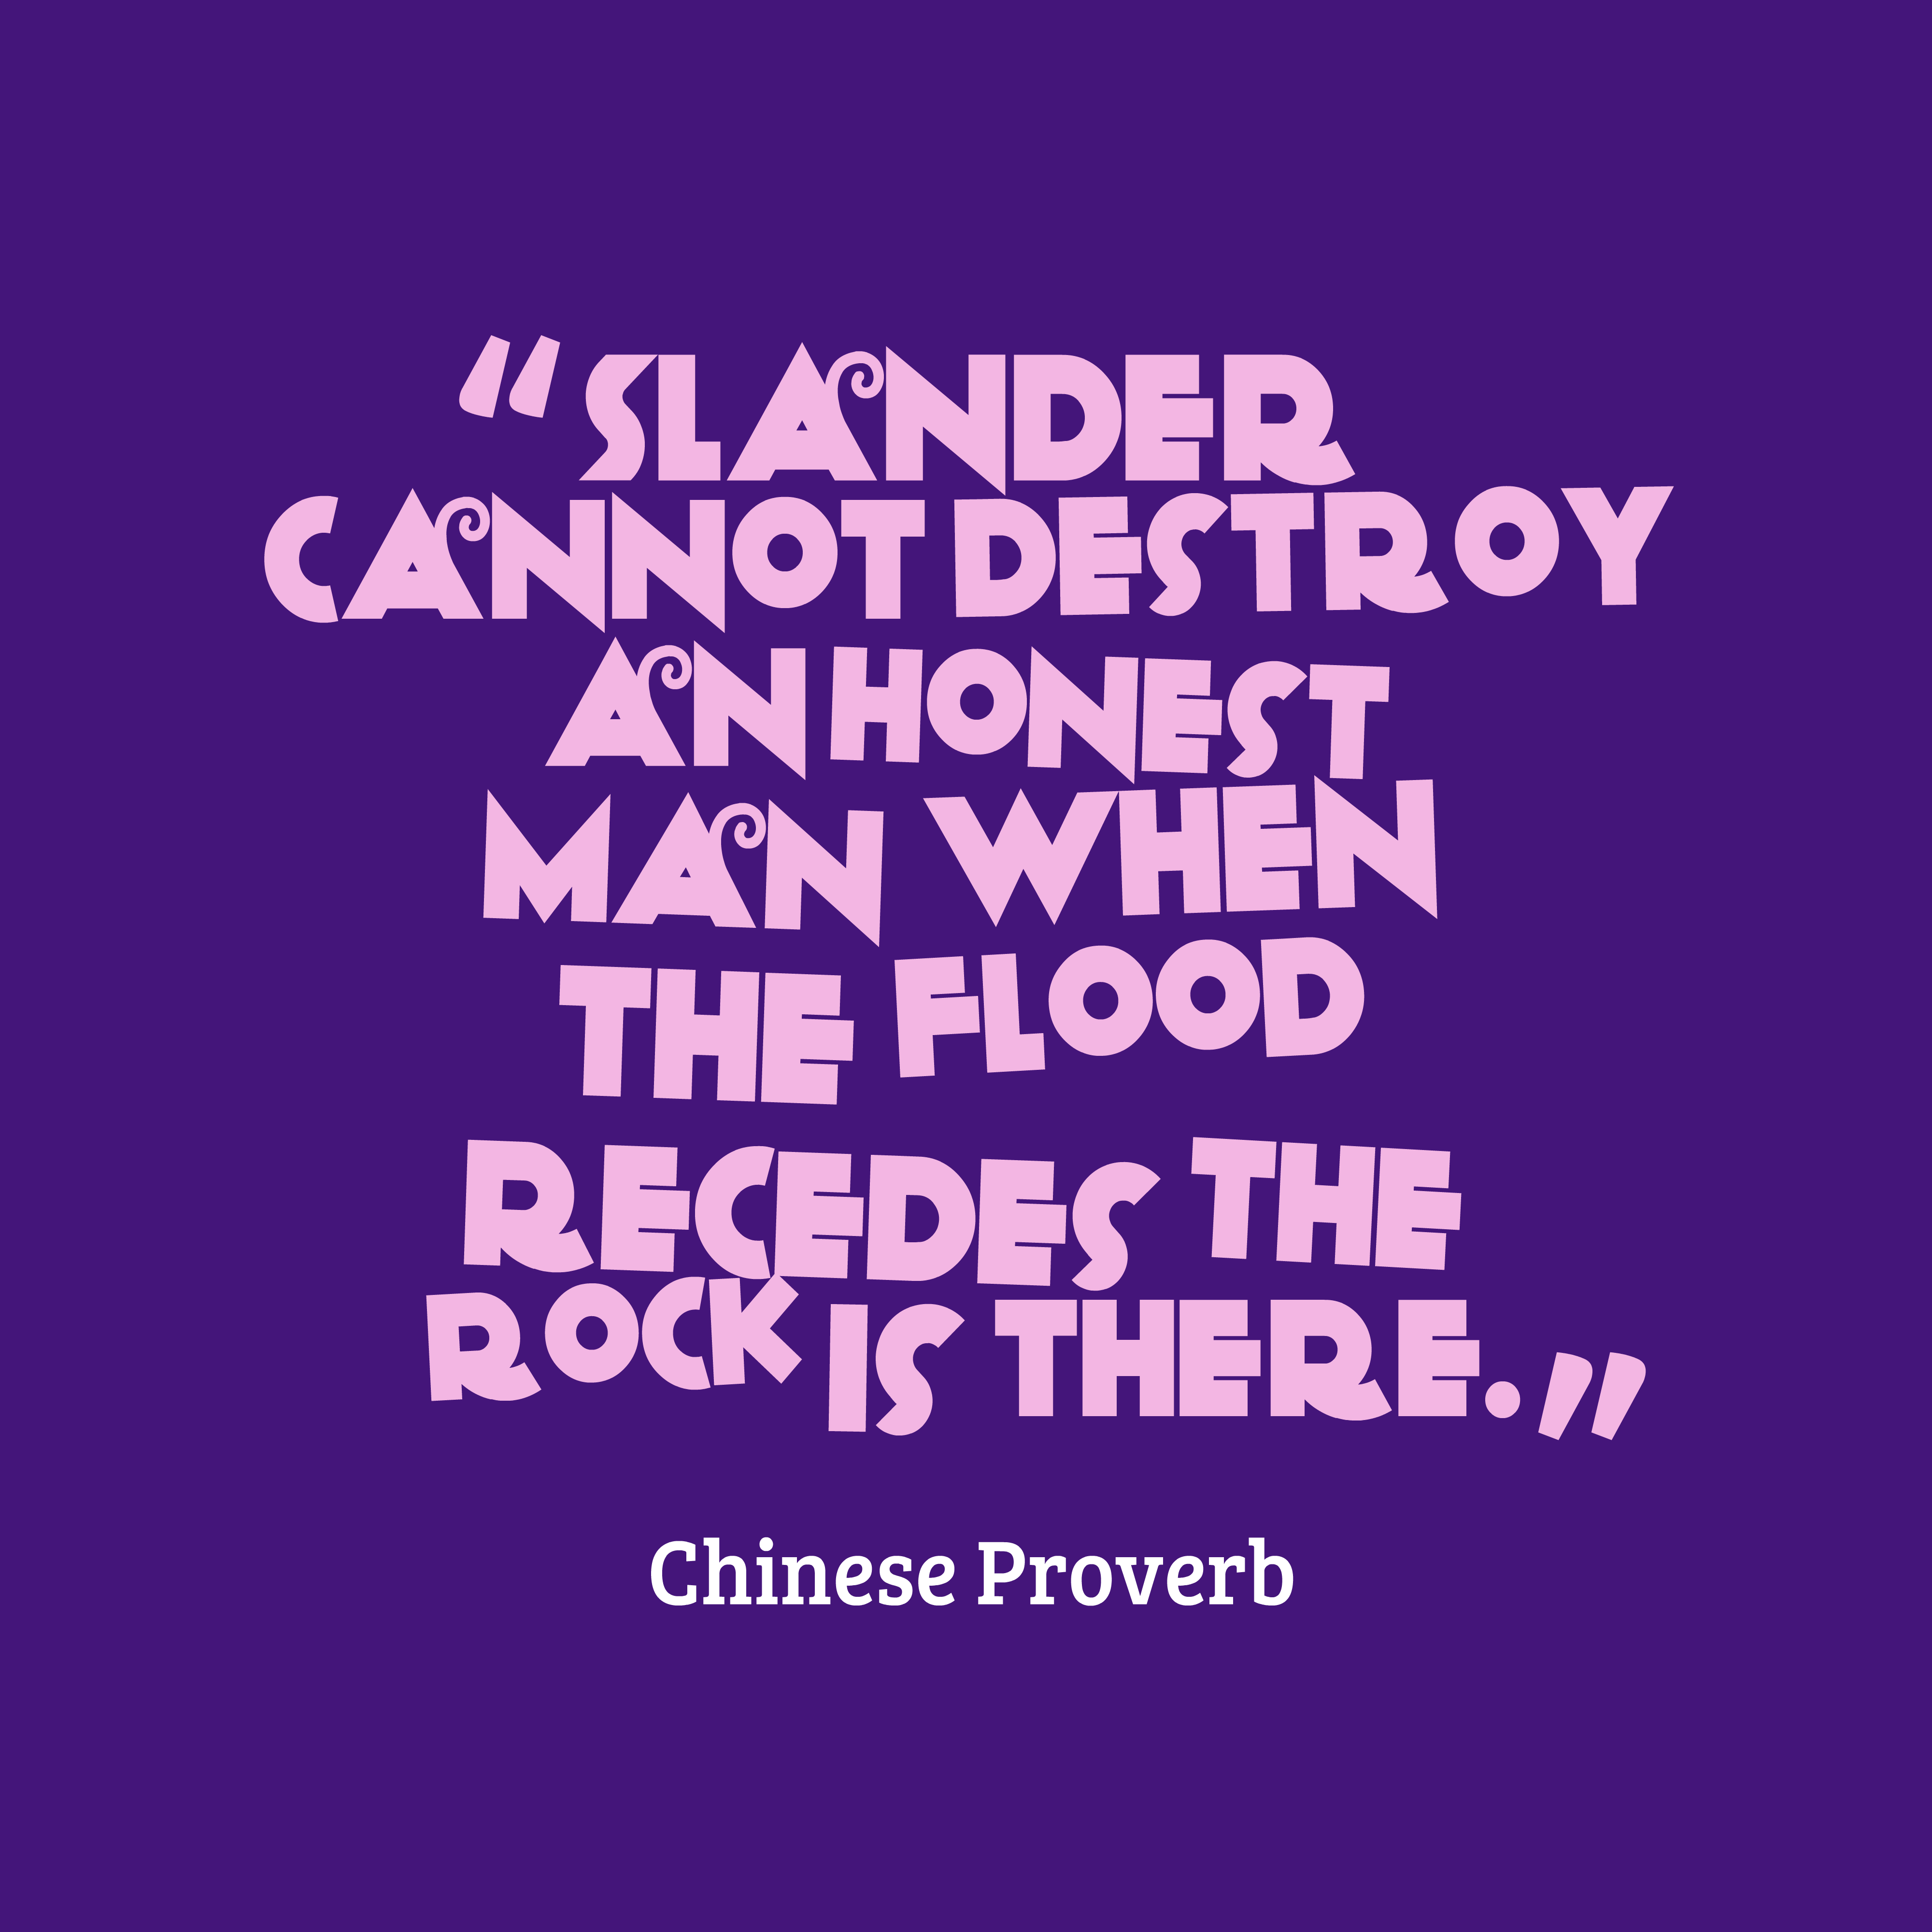 Chinese wisdom about honesty